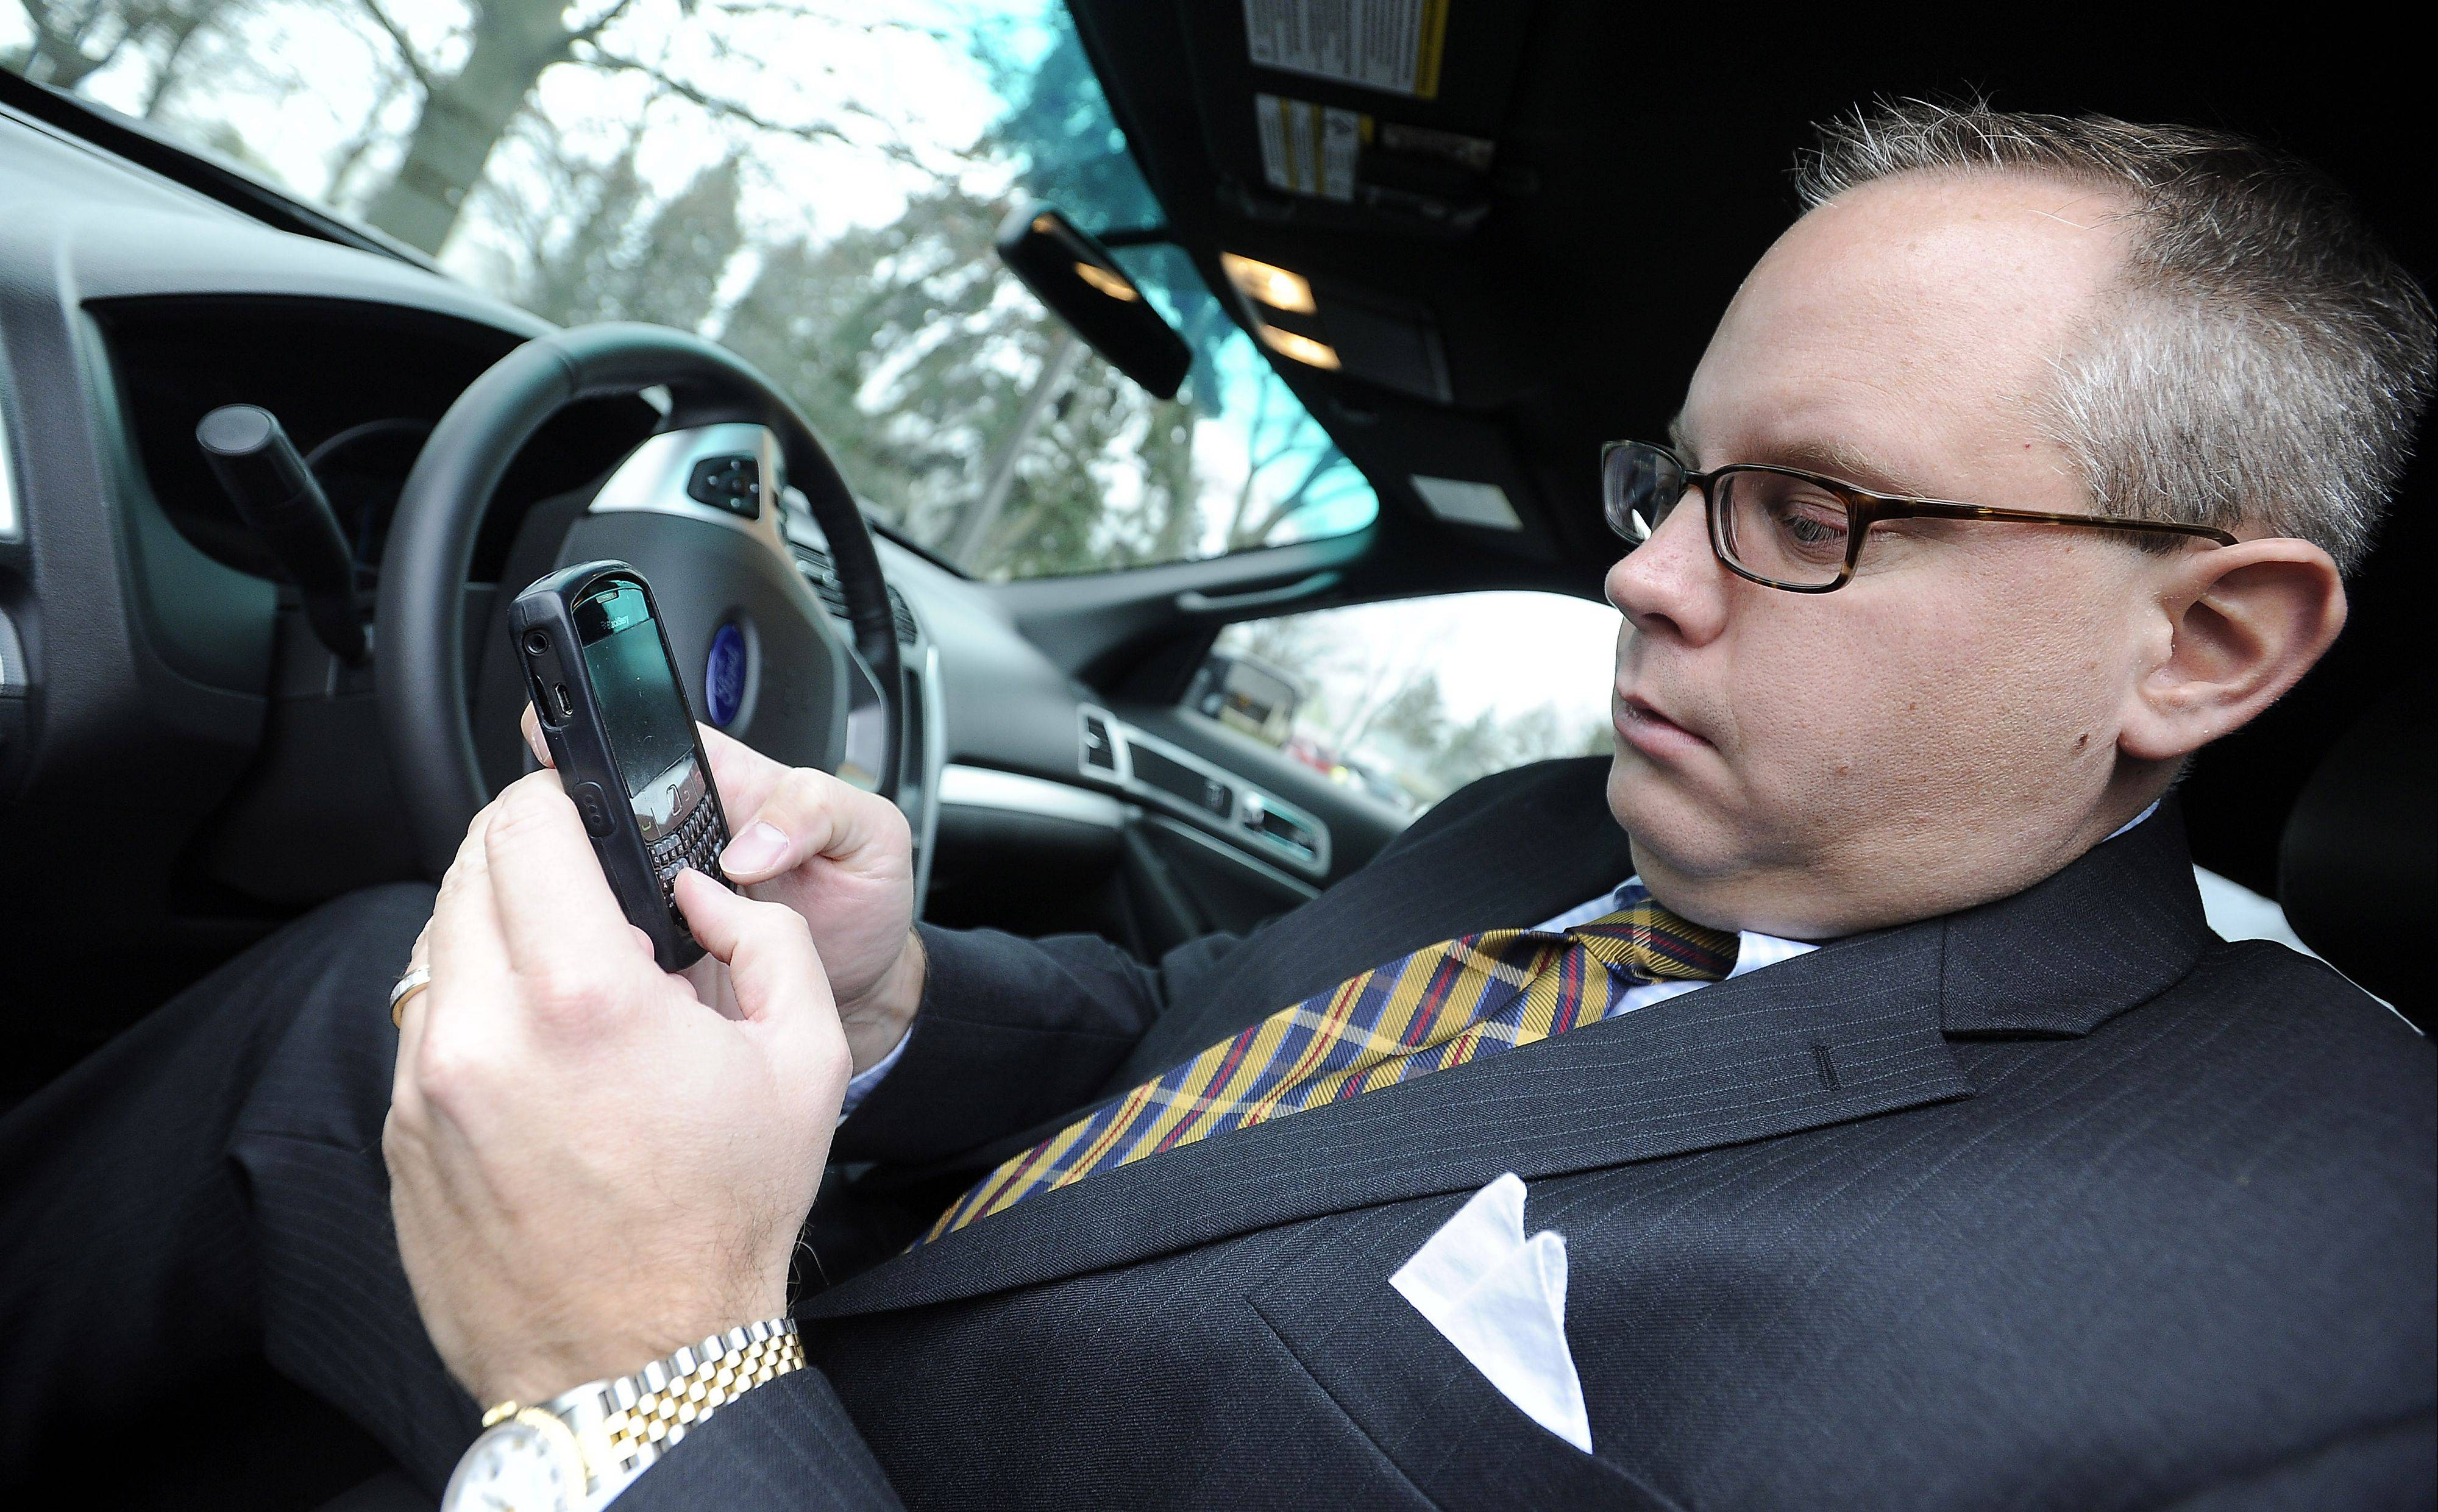 Daniel Chengary, senior account manager at Wheels Inc. in Des Plaines, checks his email before he starts to drive as he is not allowed to make cellphone calls while driving on company time.